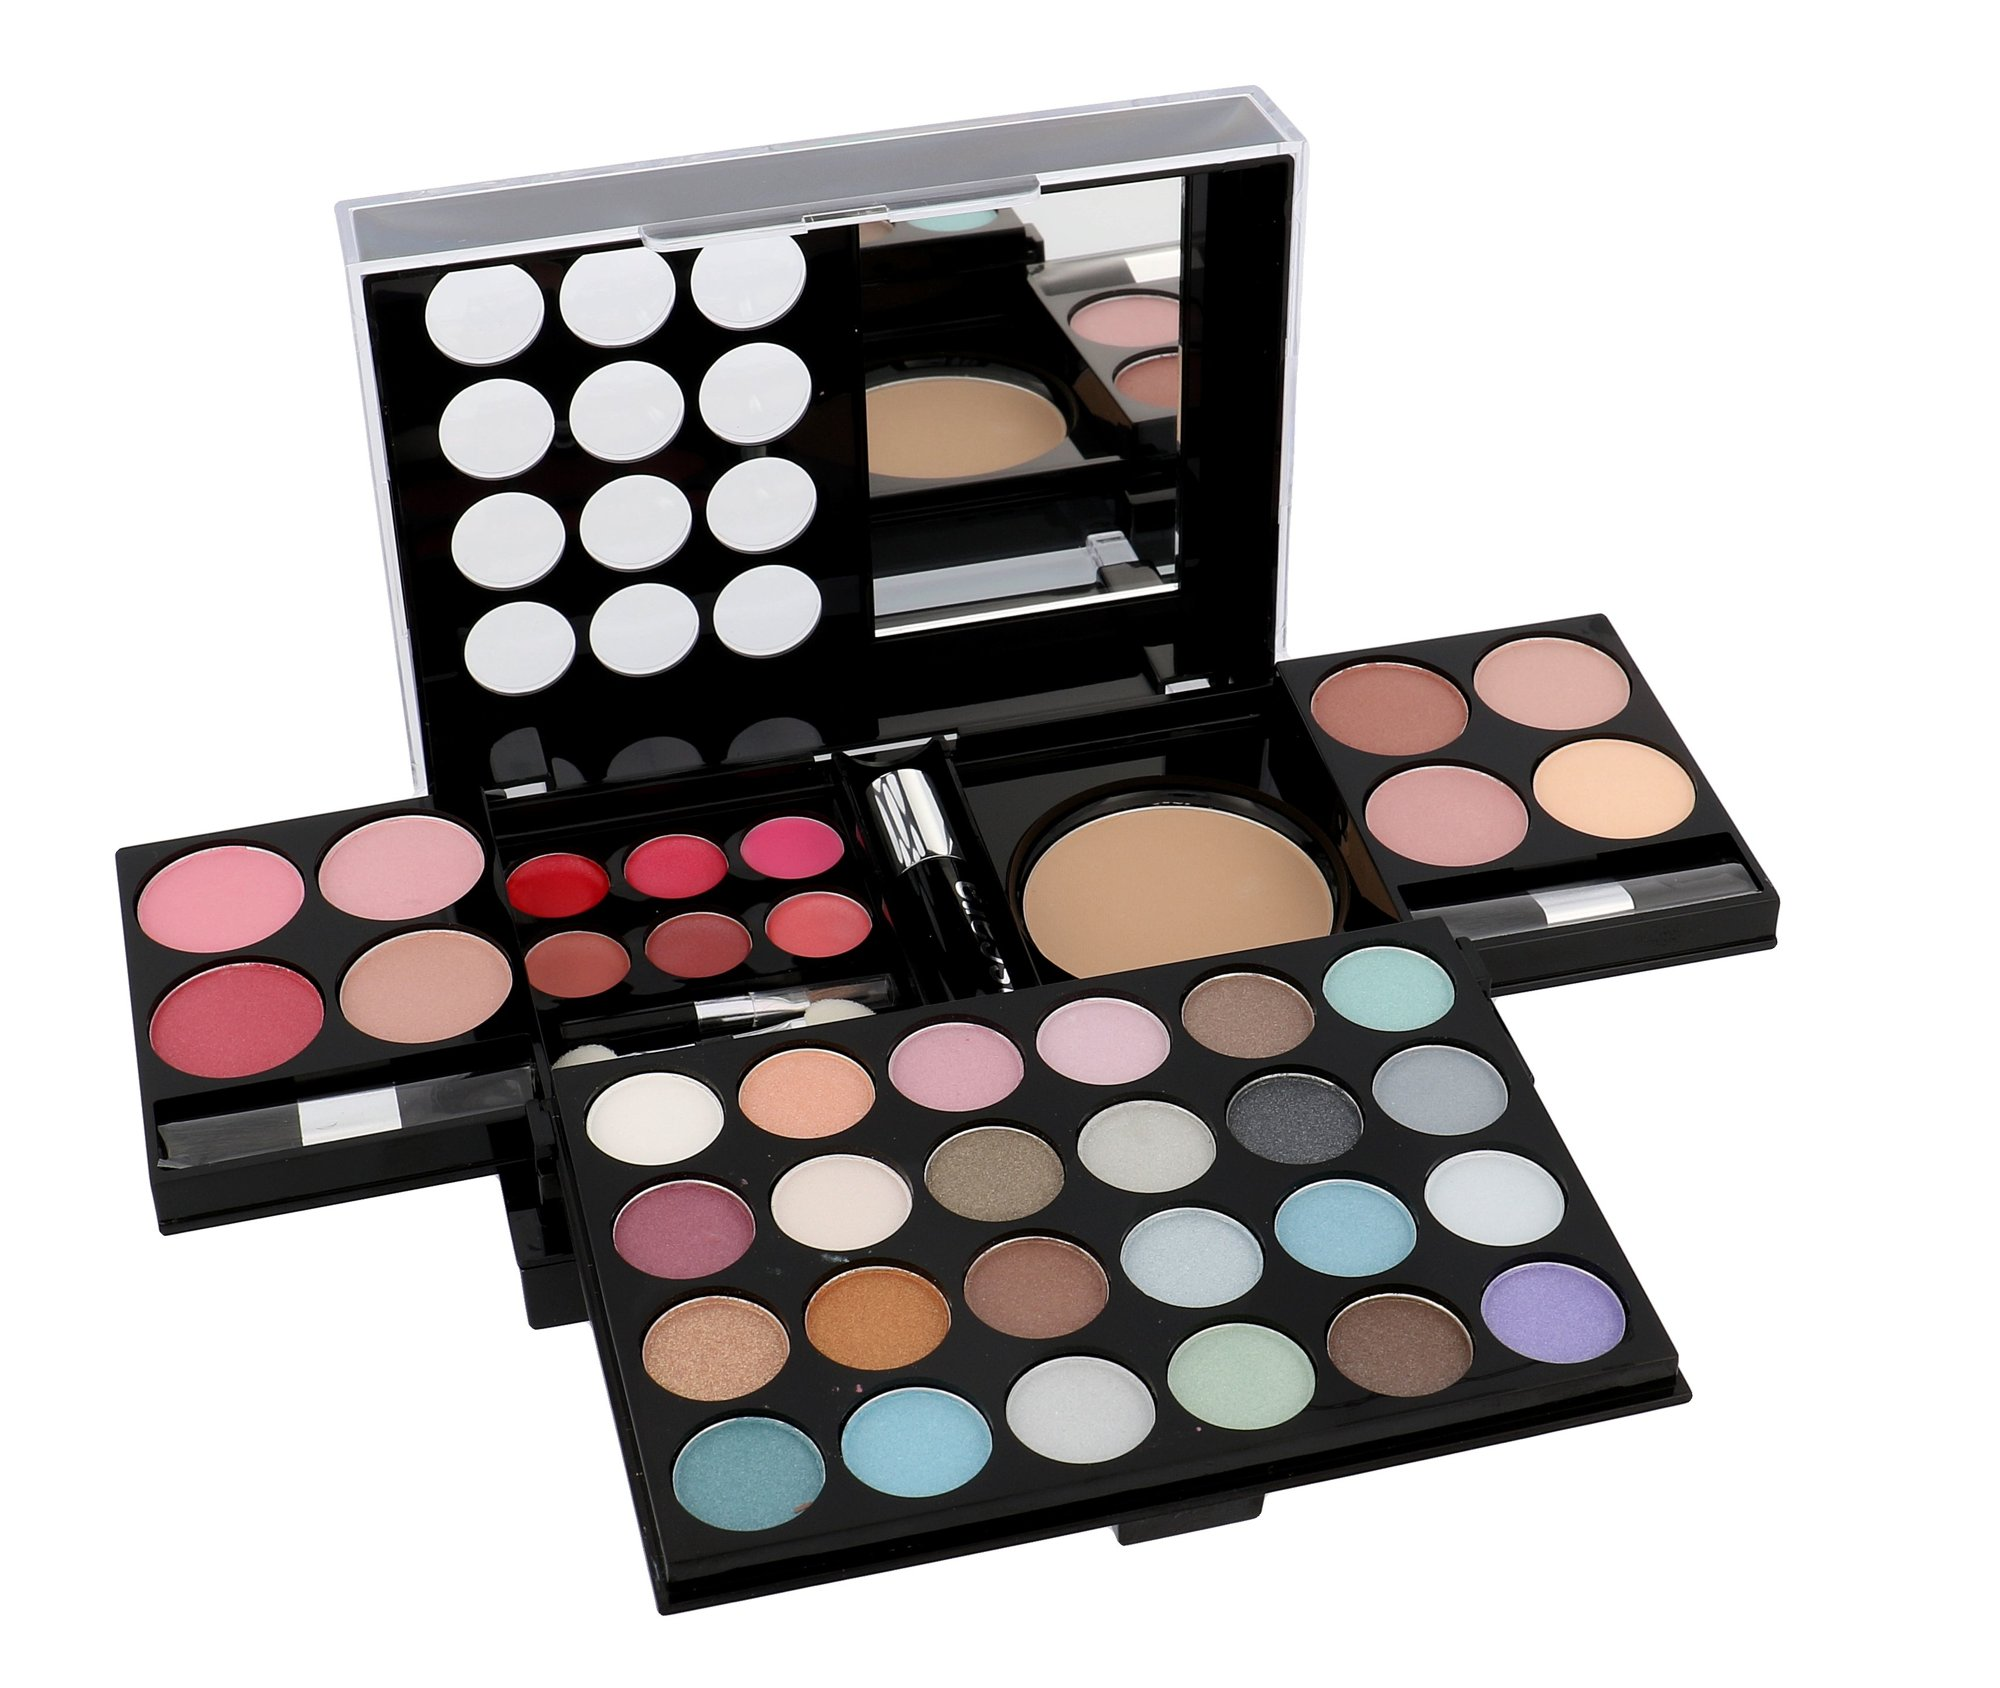 Akių šešėlis Makeup Trading Schmink Set 40 Colors